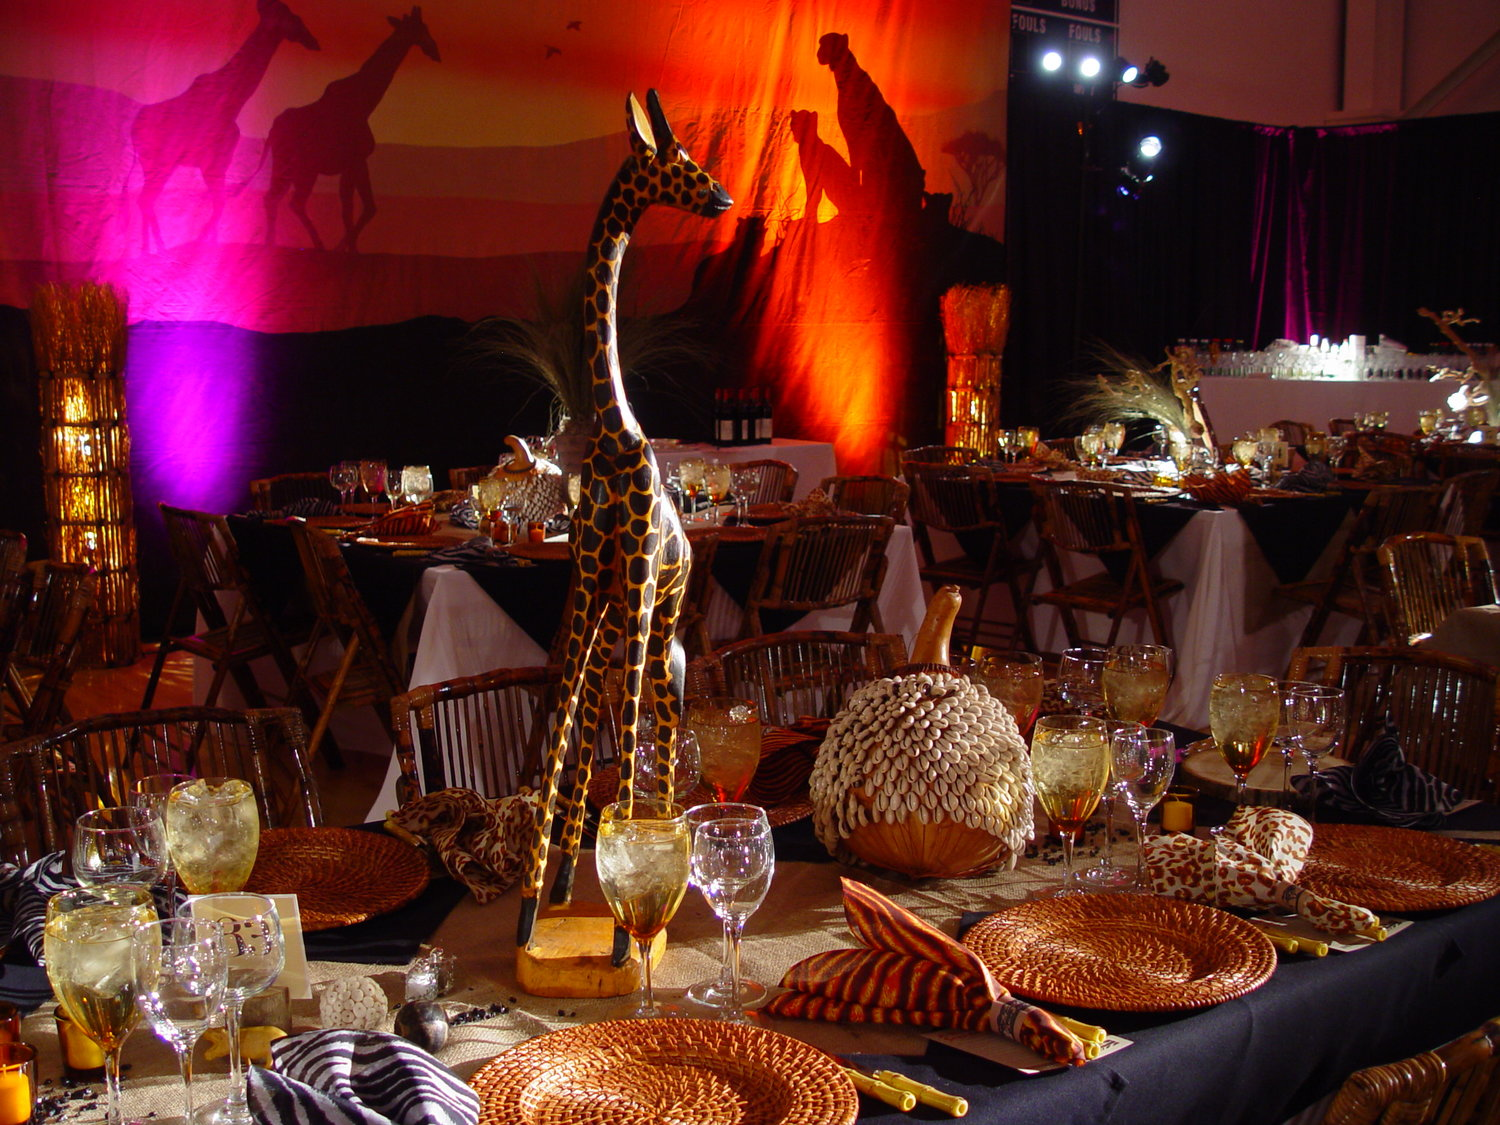 NJ_event_design_decor_centerpieces_theme_party_auction_gala_fundraiser_safari_serengeti.jpg